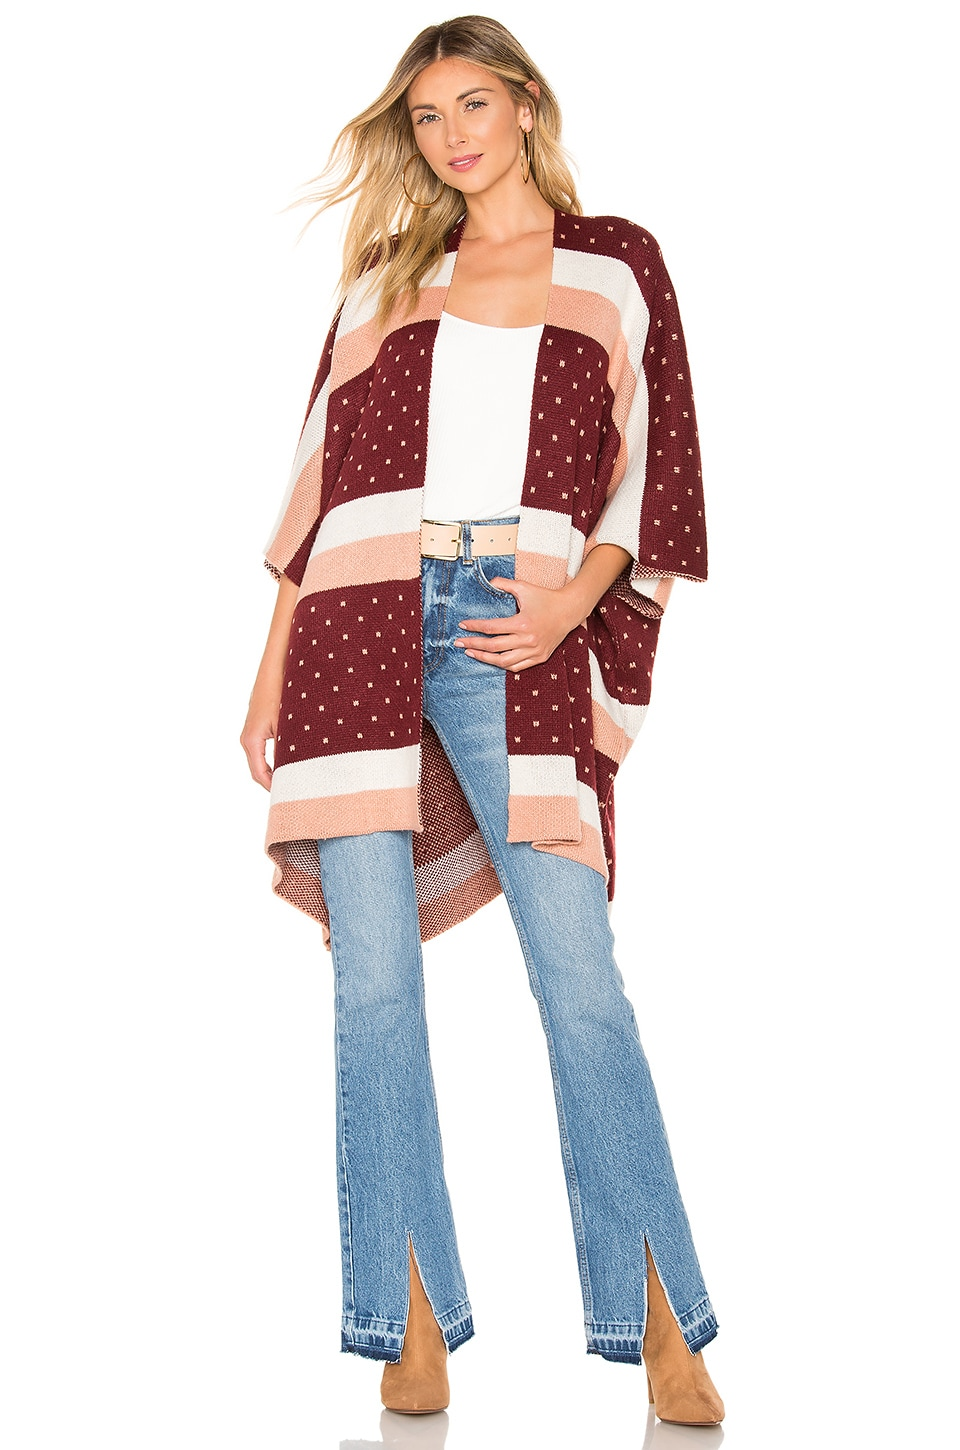 House of Harlow 1960 x REVOLVE Tustin Poncho in Desert Stripe